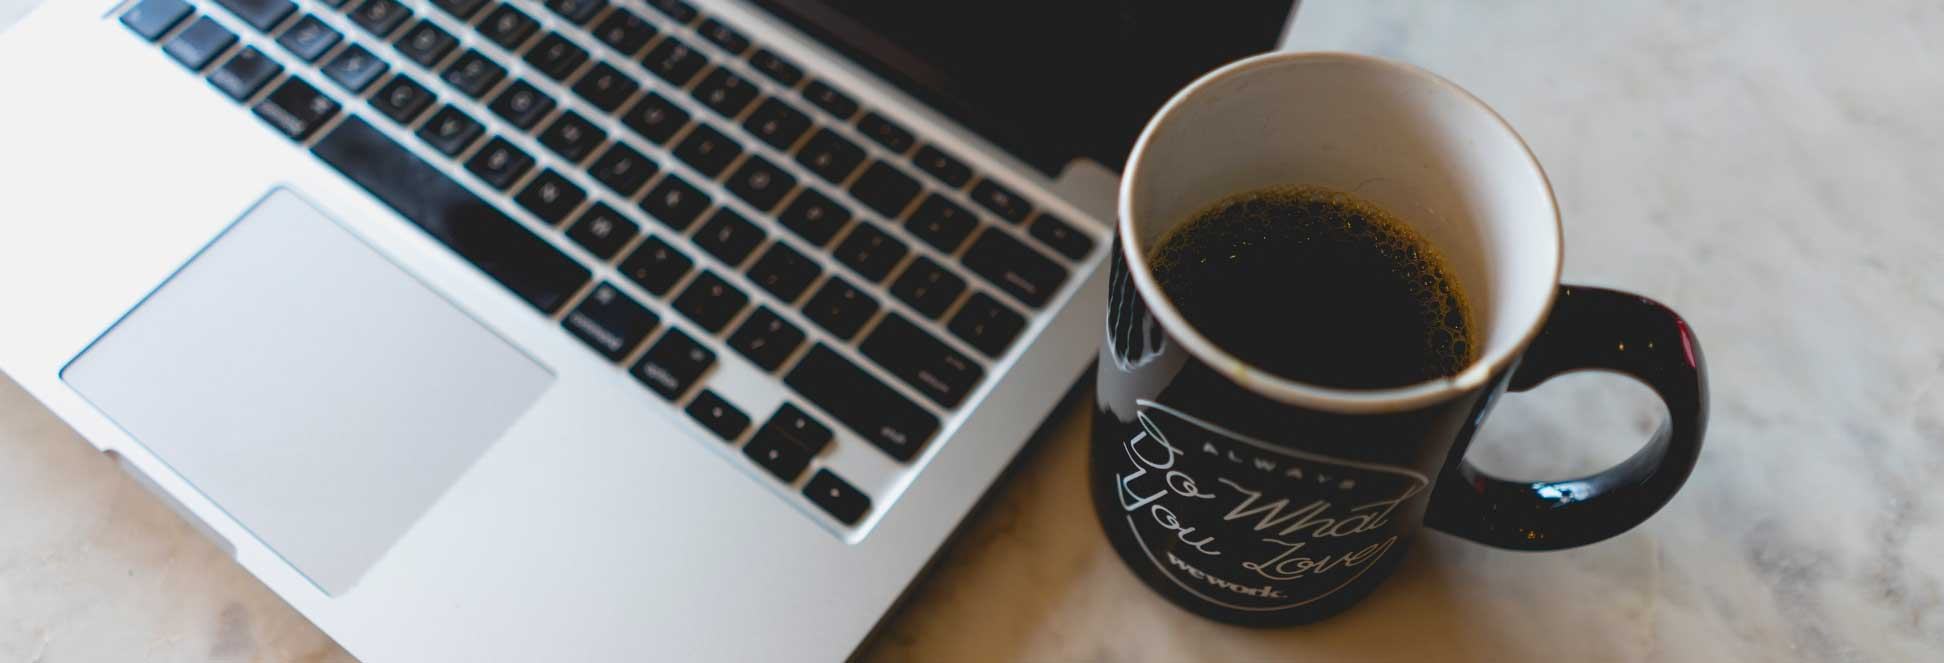 Image of laptop and coffee